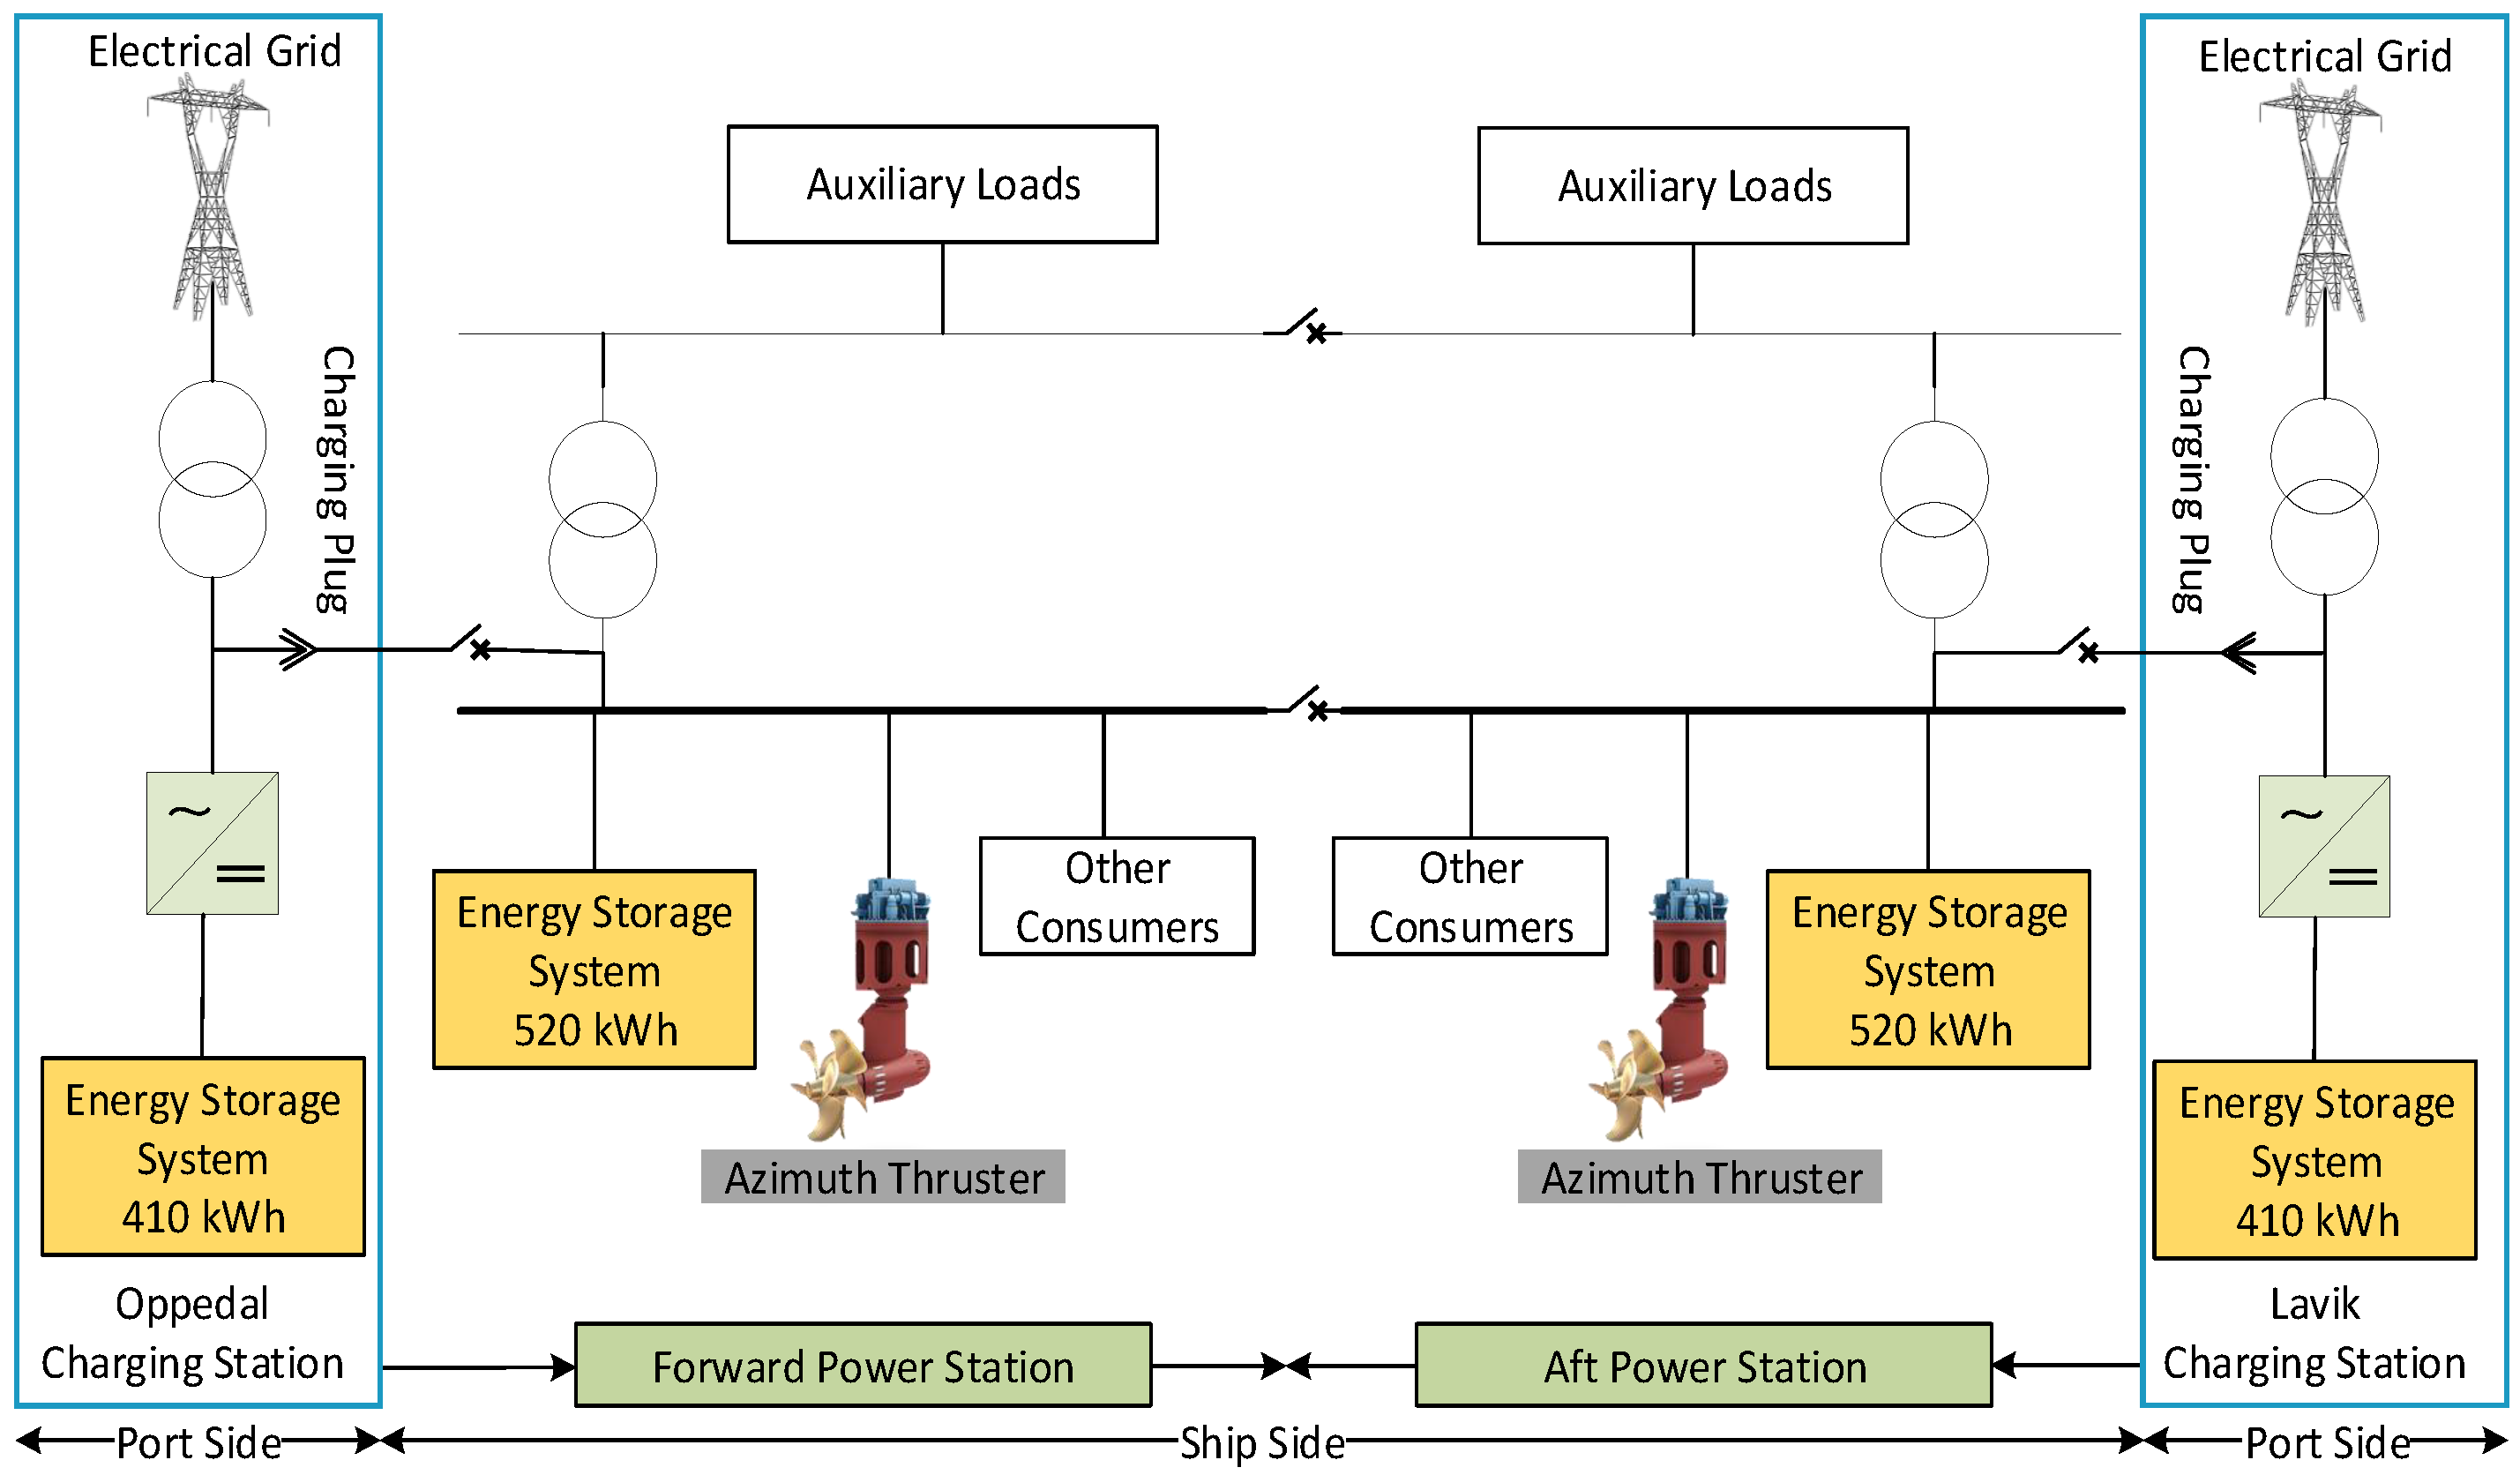 Energies Free Full Text Energy Storage Systems For Shipboard Rc Charging Circuit Stored And Dissipated Waveforms 11 03492 G019